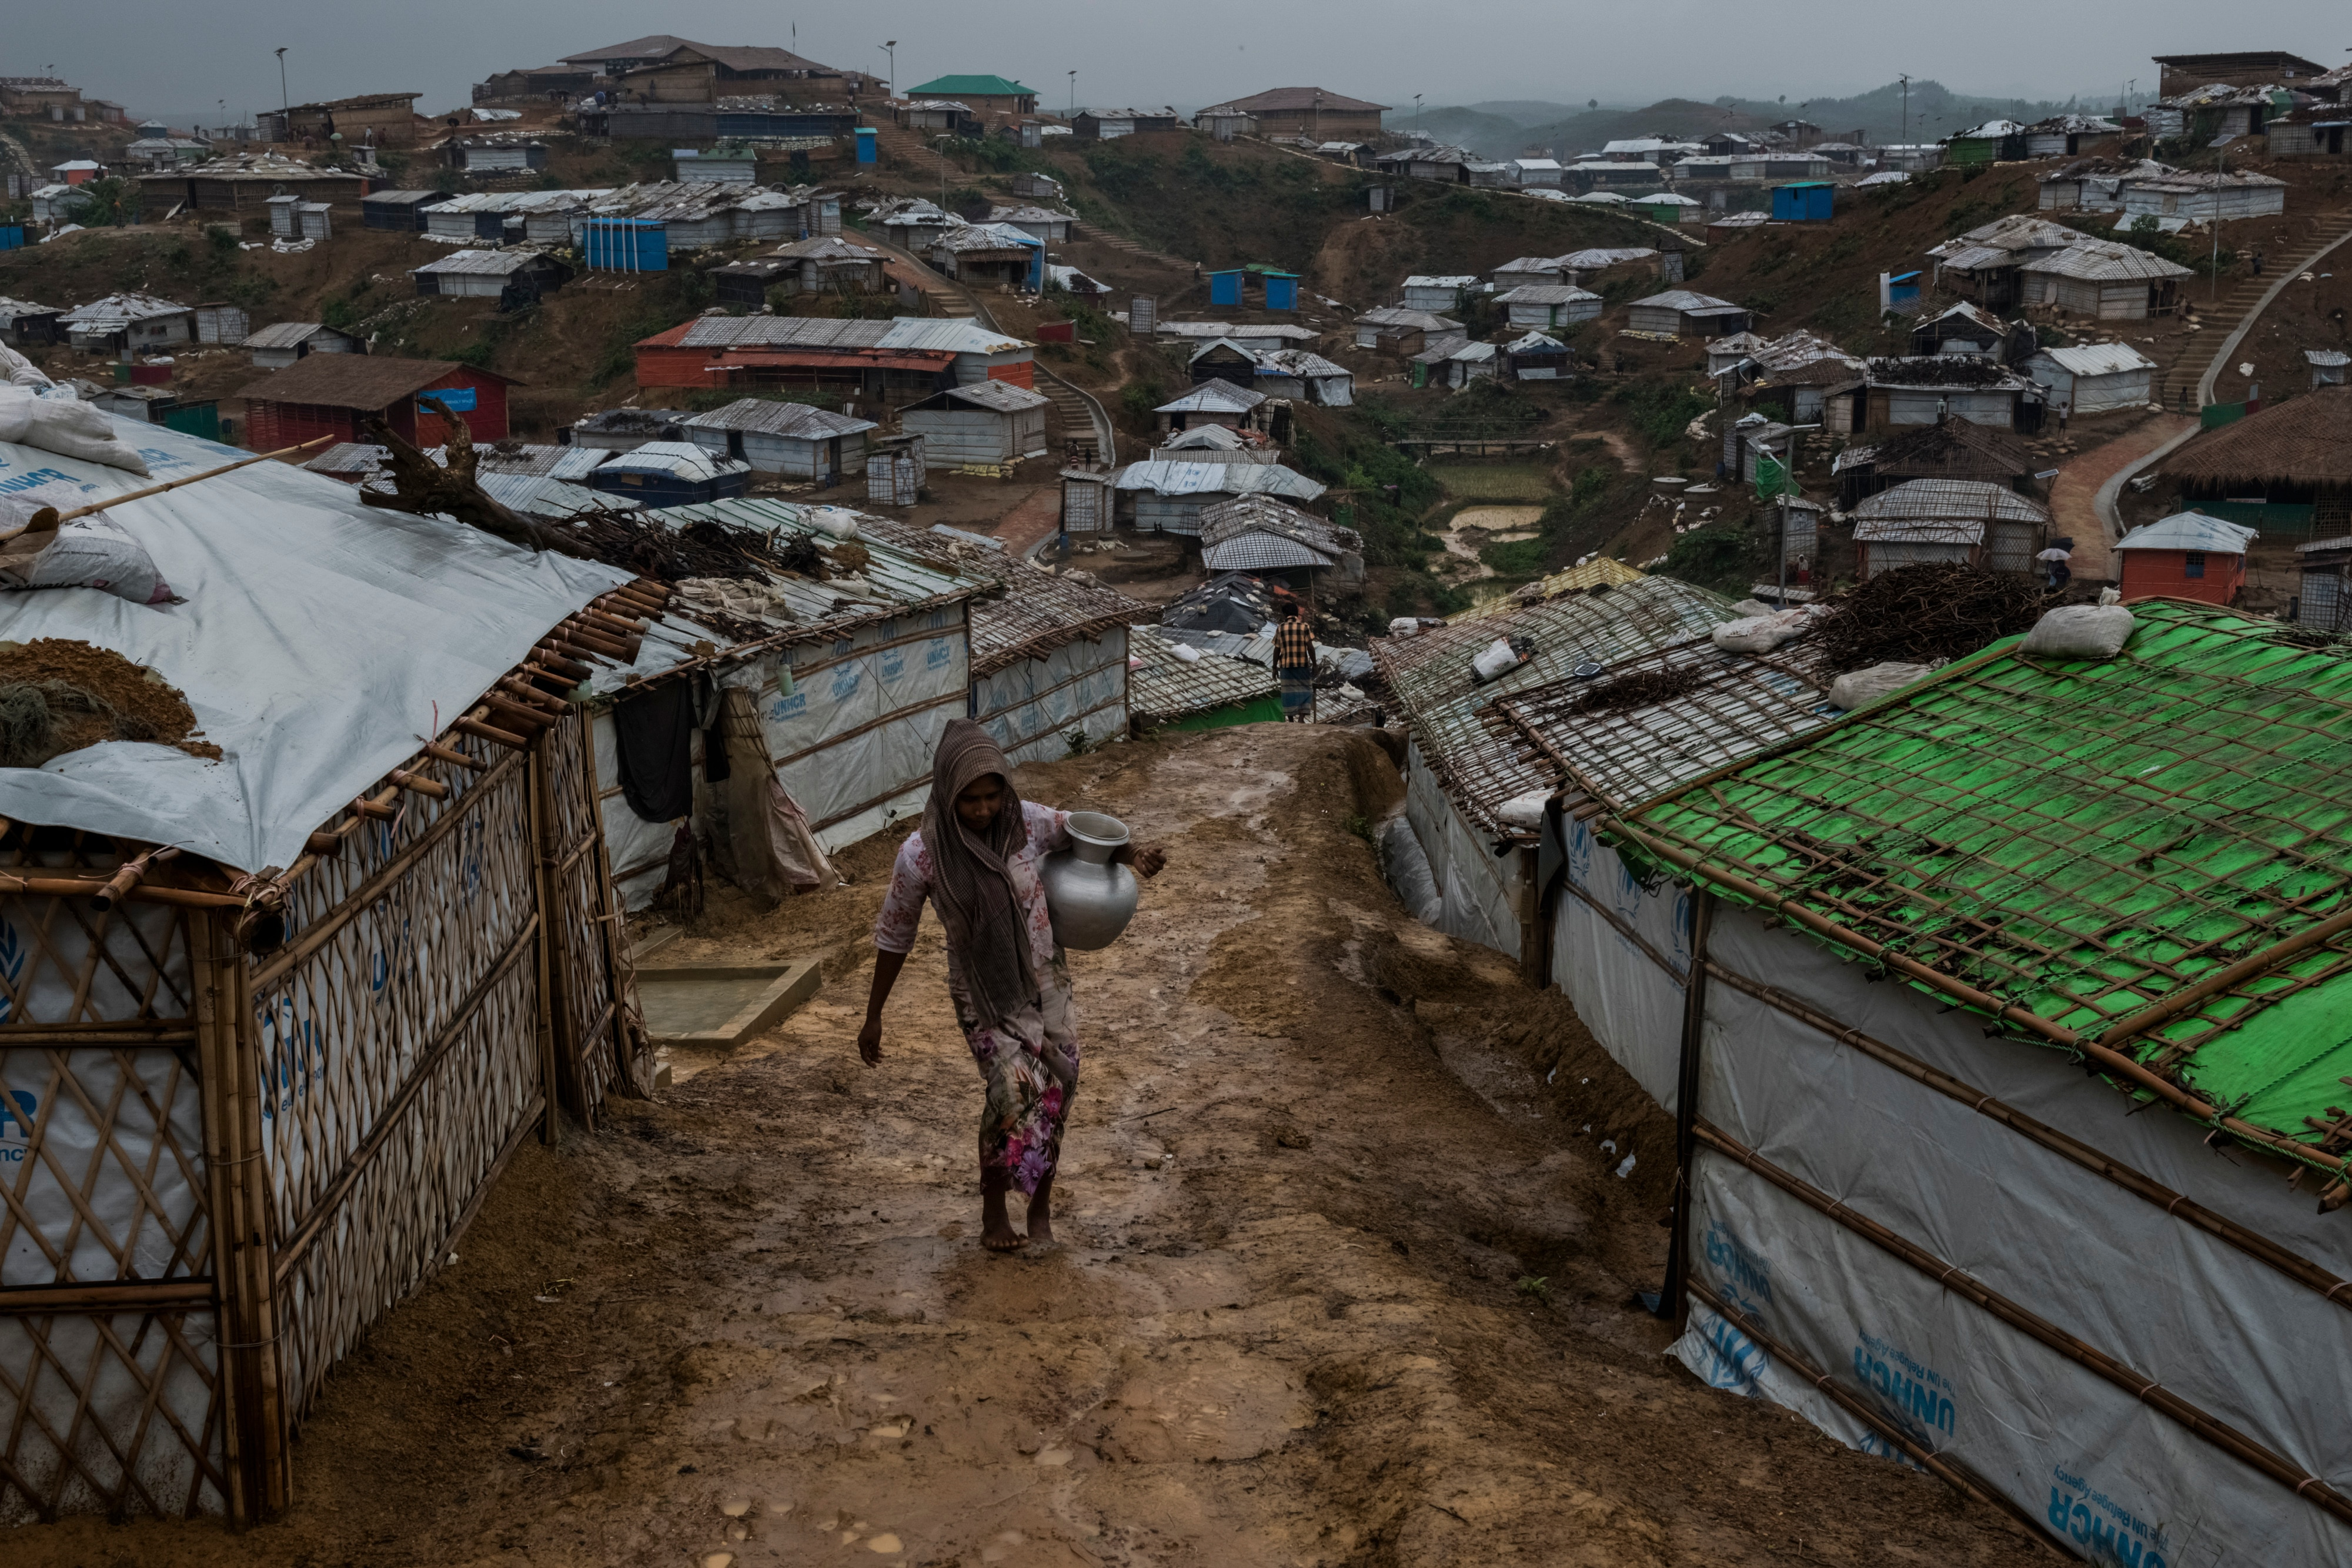 A Rohingya refugee in the Kutupalong camp in Bangladesh. About 2,200 Rohingya Muslims who fled violence in Myanmar last year are set to be repatriated.